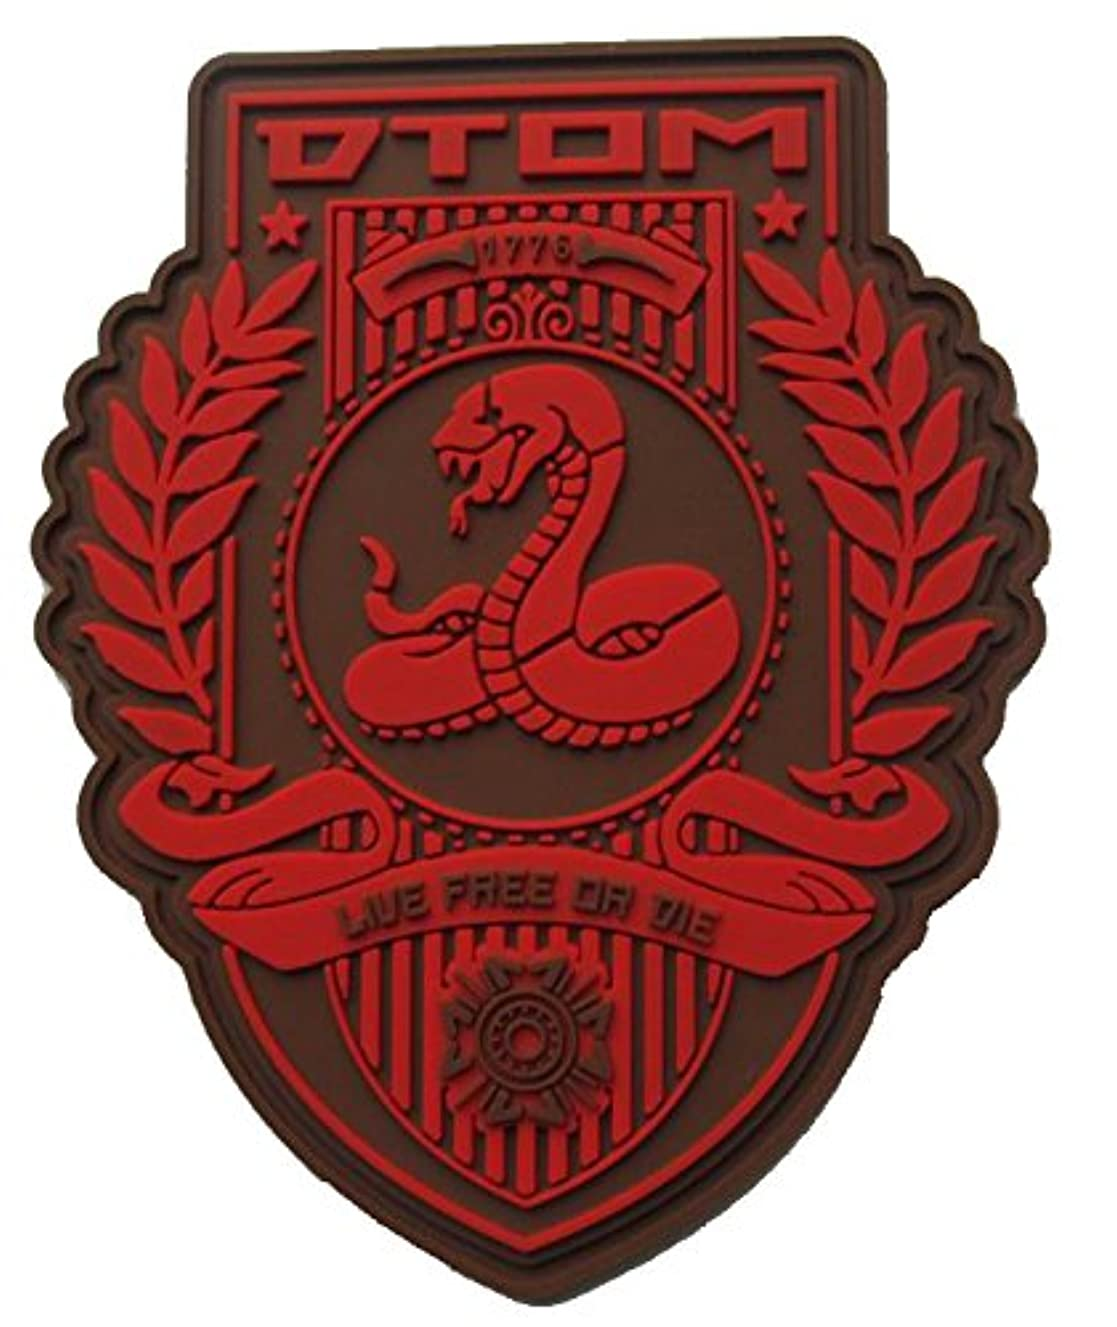 Don't Tread On Me (DTOM) PVC Morale Patch nceto8154